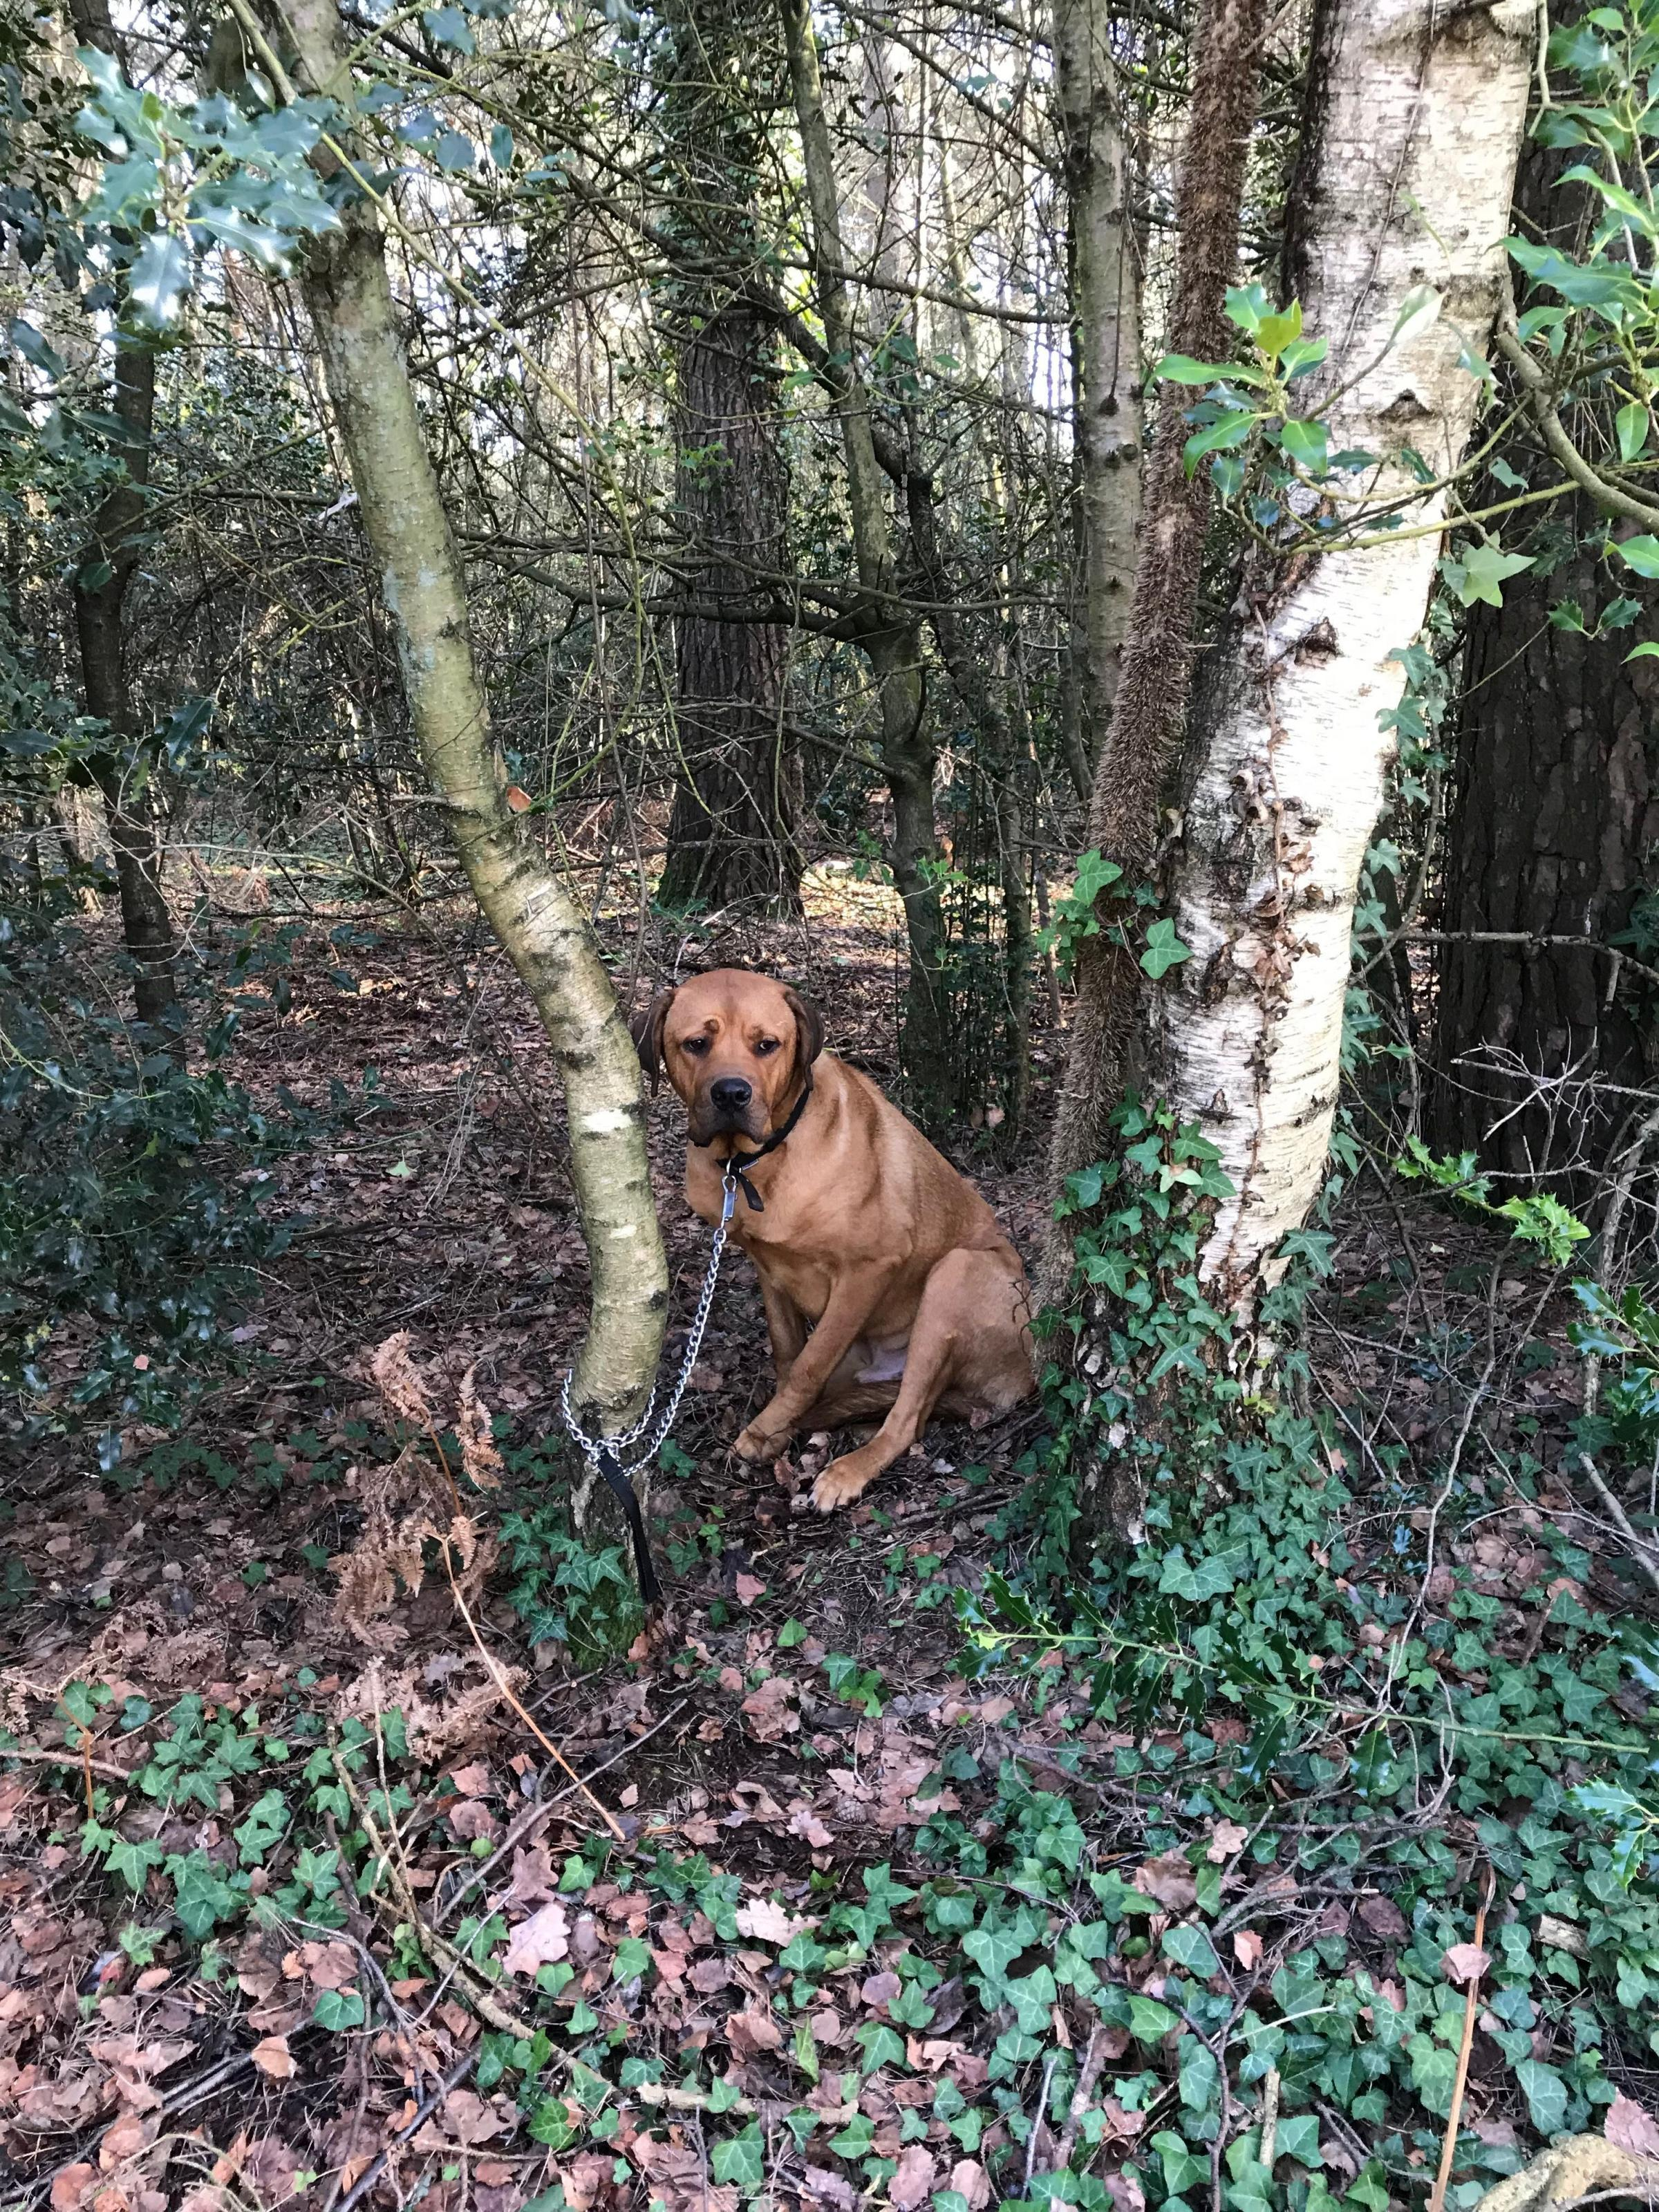 Bruce was found tied to a tree near RSPCA Ashley Heath Animal Centre